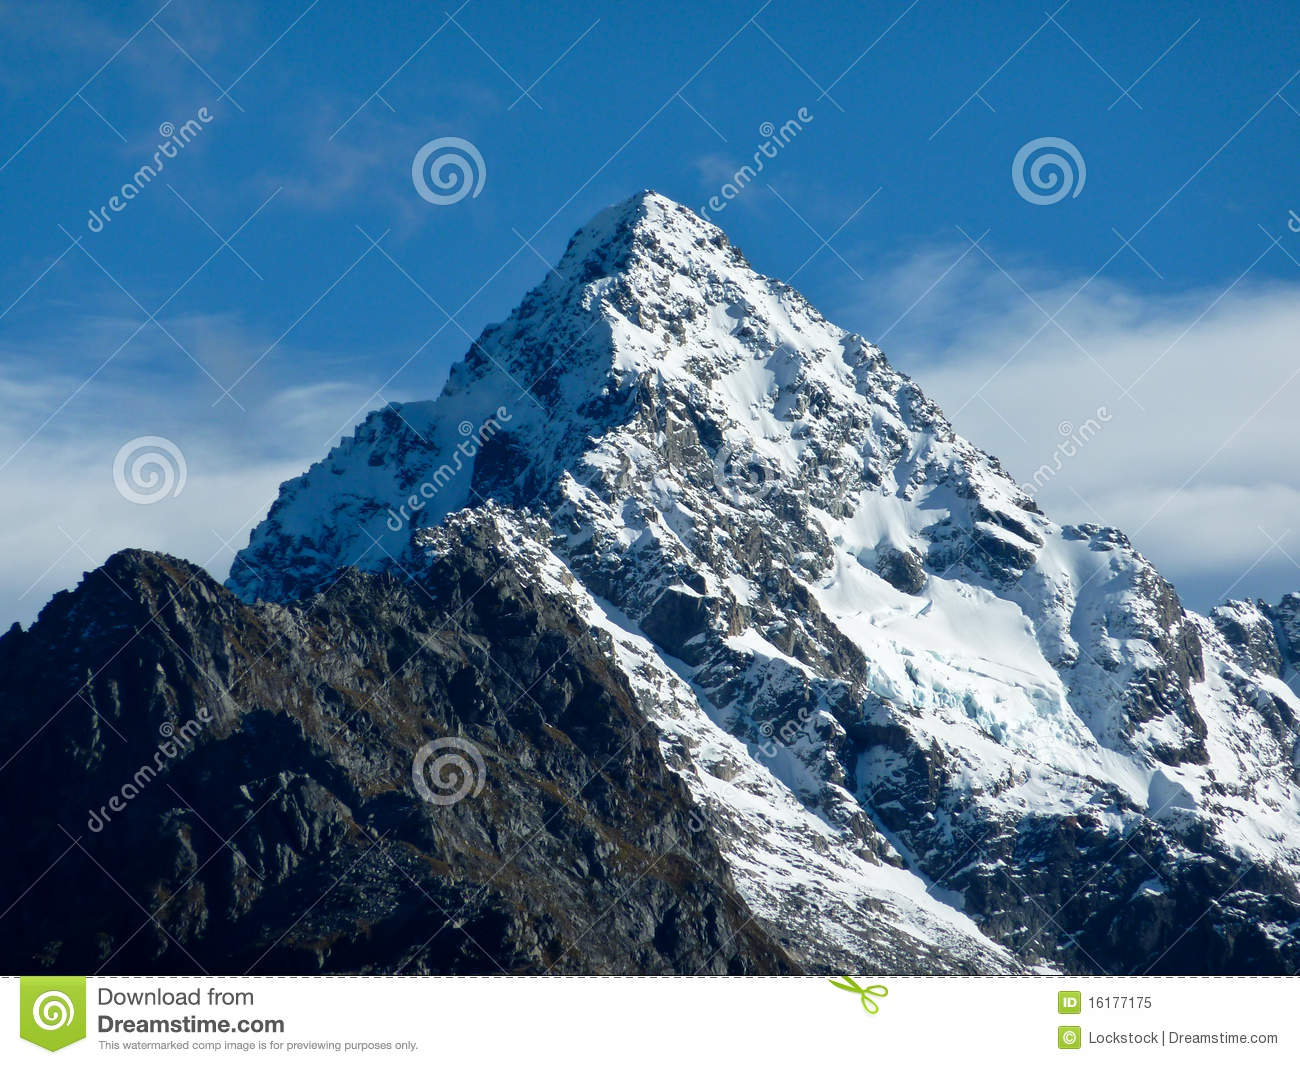 Snow Capped Mountain Royalty Free Stock Photo - Image: 16177175